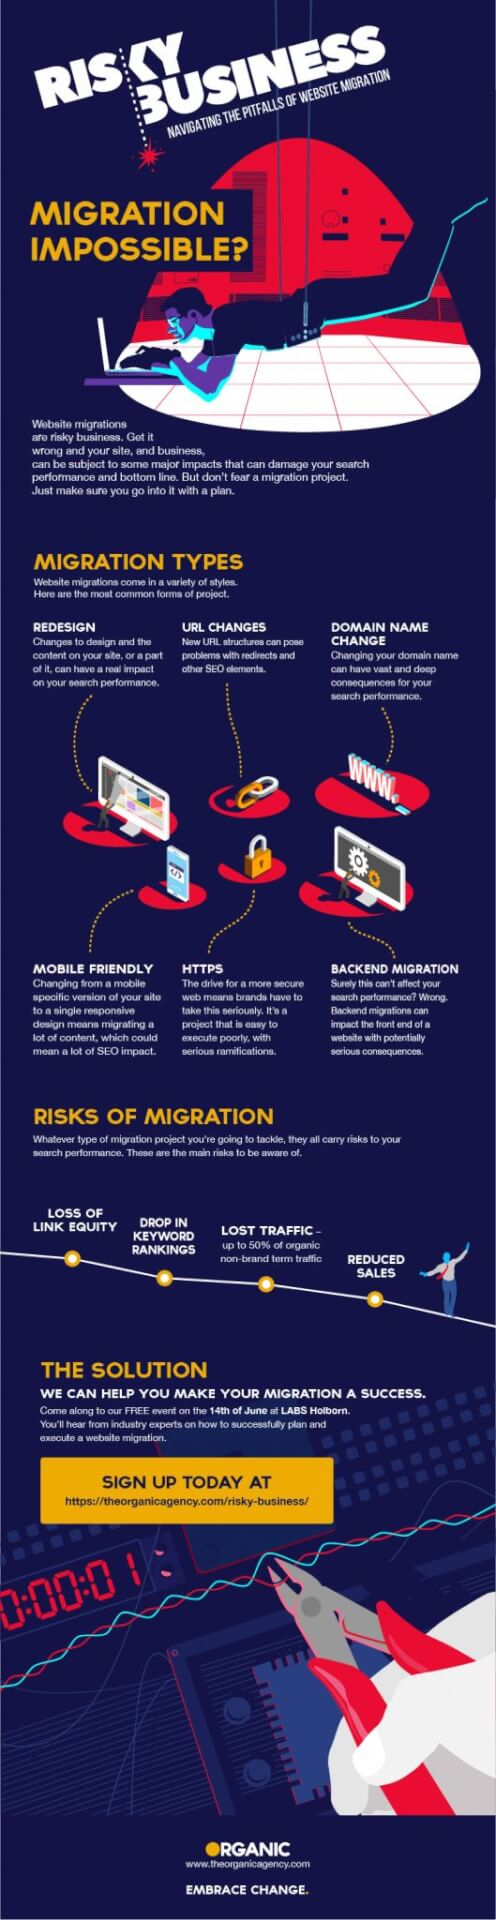 infographic showing the types of website migration and risks involved